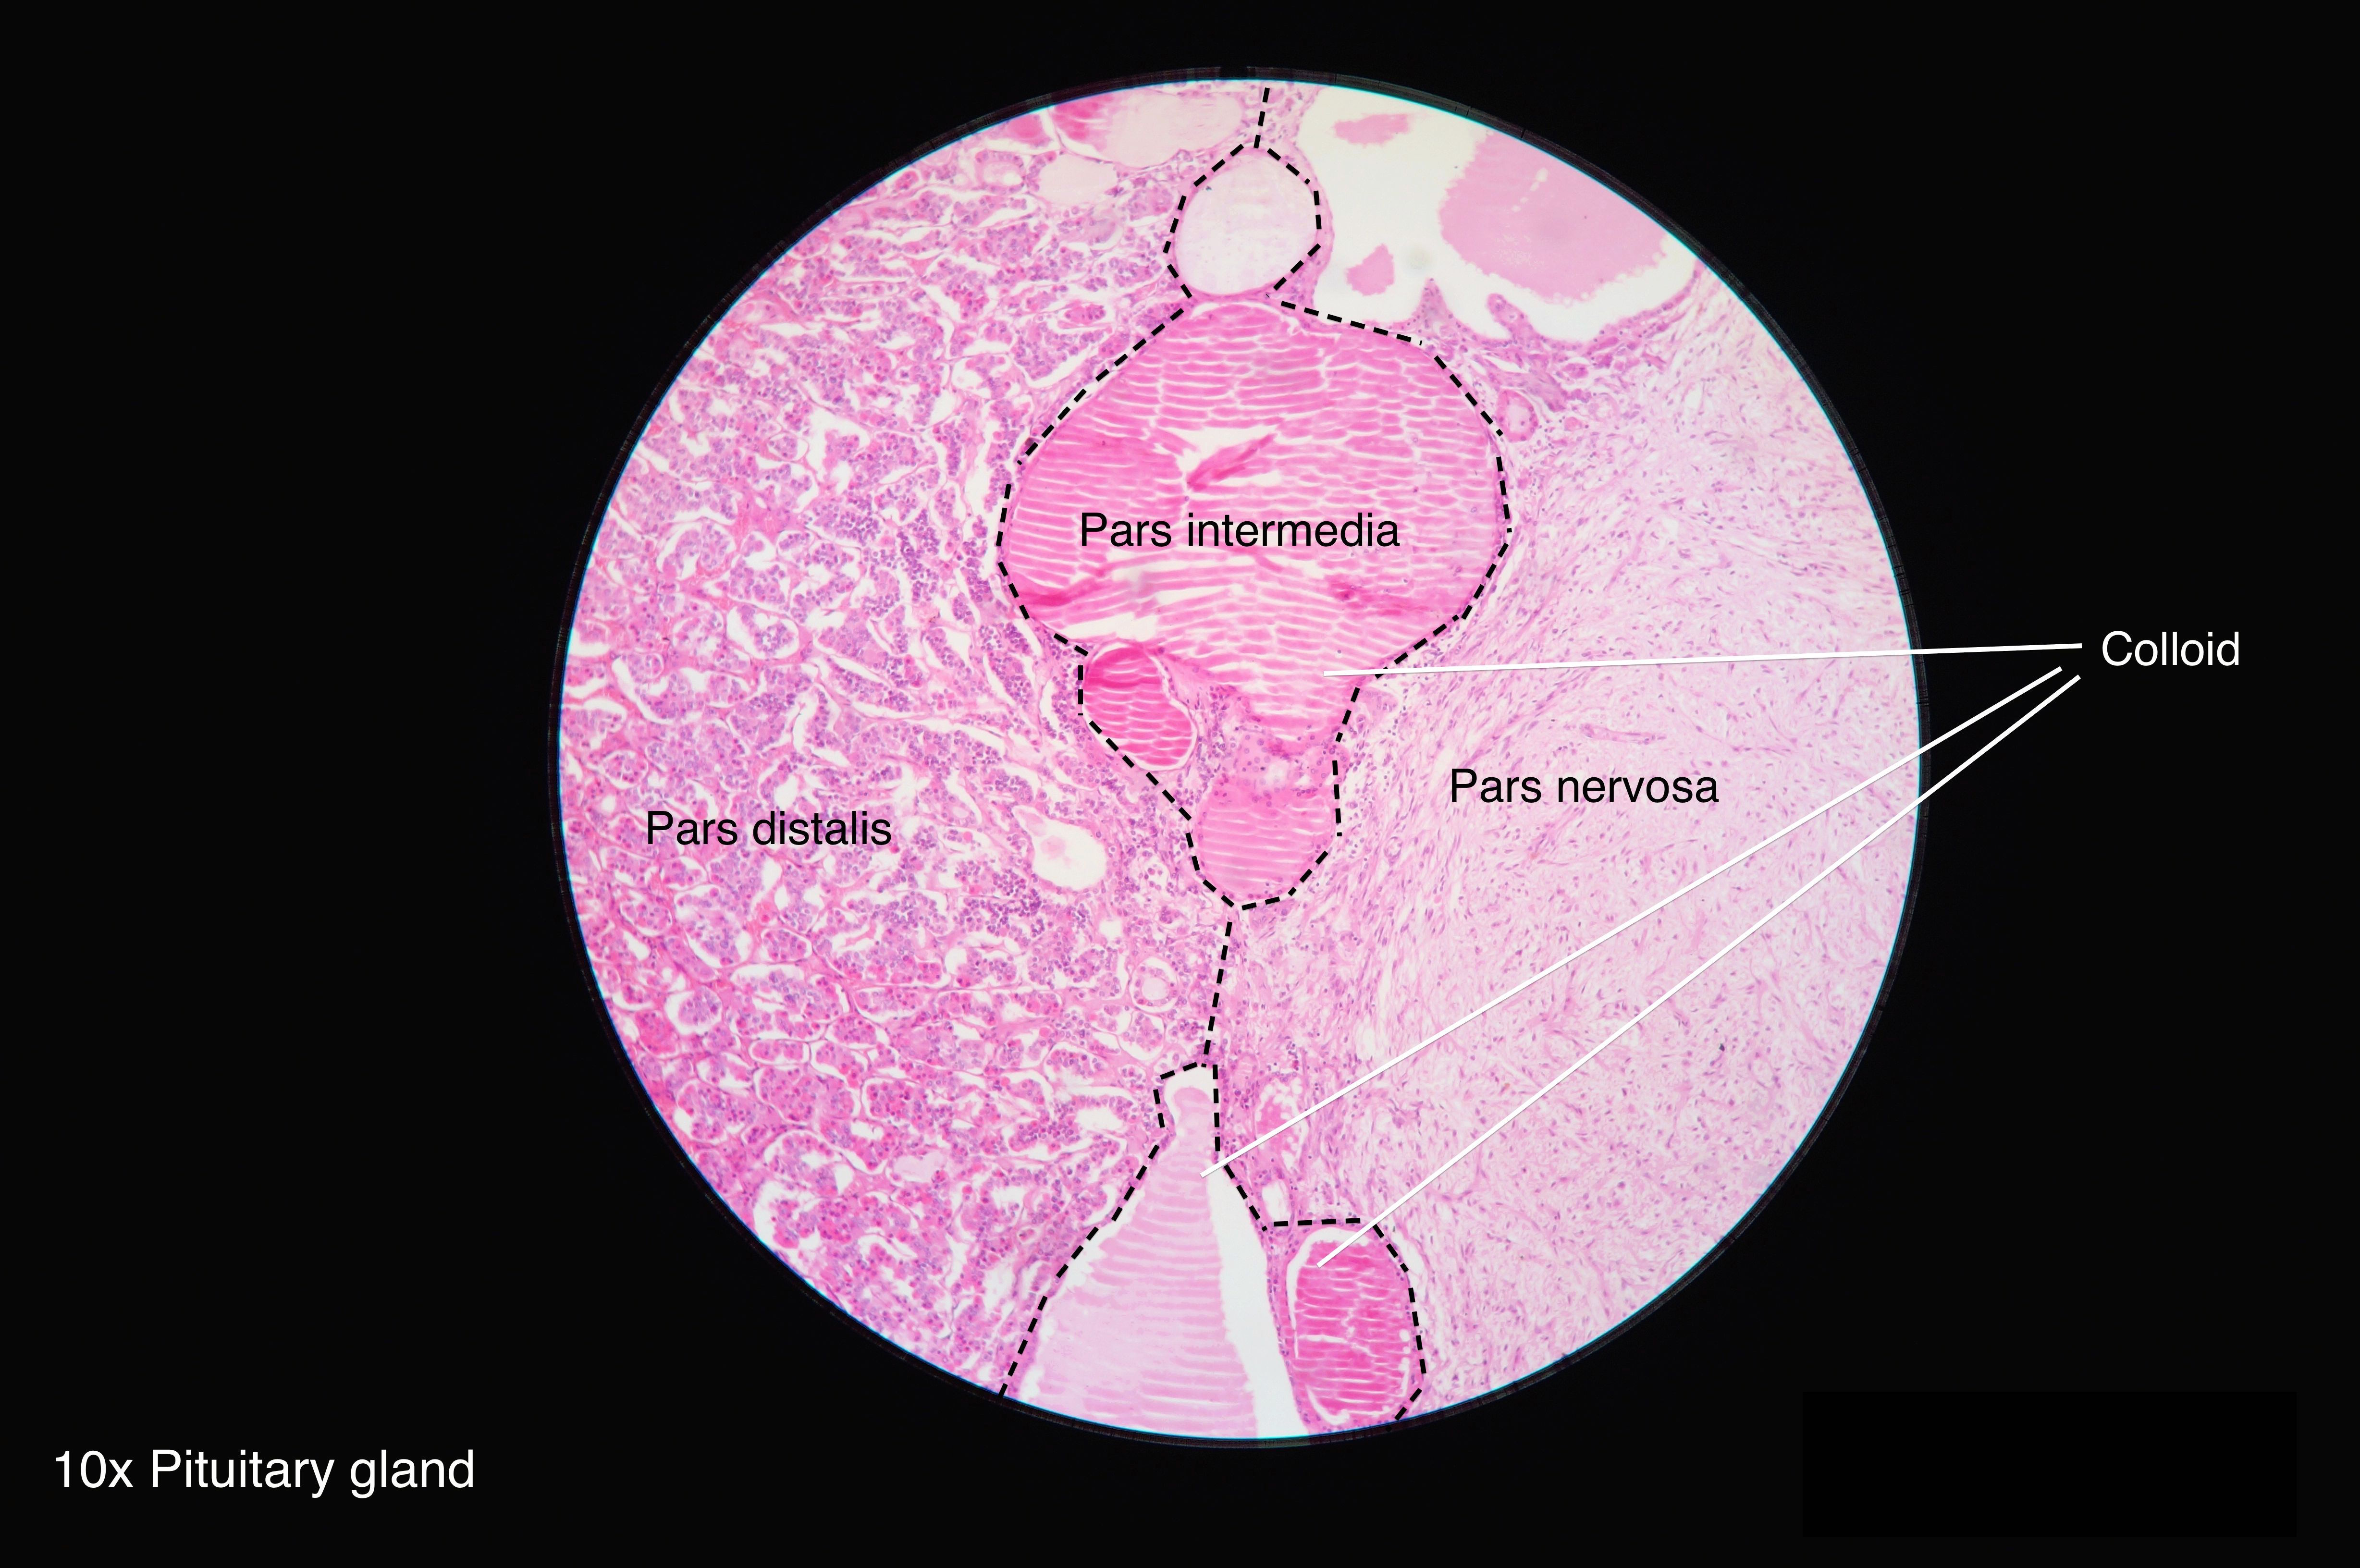 pituitary glands Pituitary gland definition, a small, somewhat cherry-shaped double structure attached by a stalk to the base of the brain and constituting the master endocrine gland.